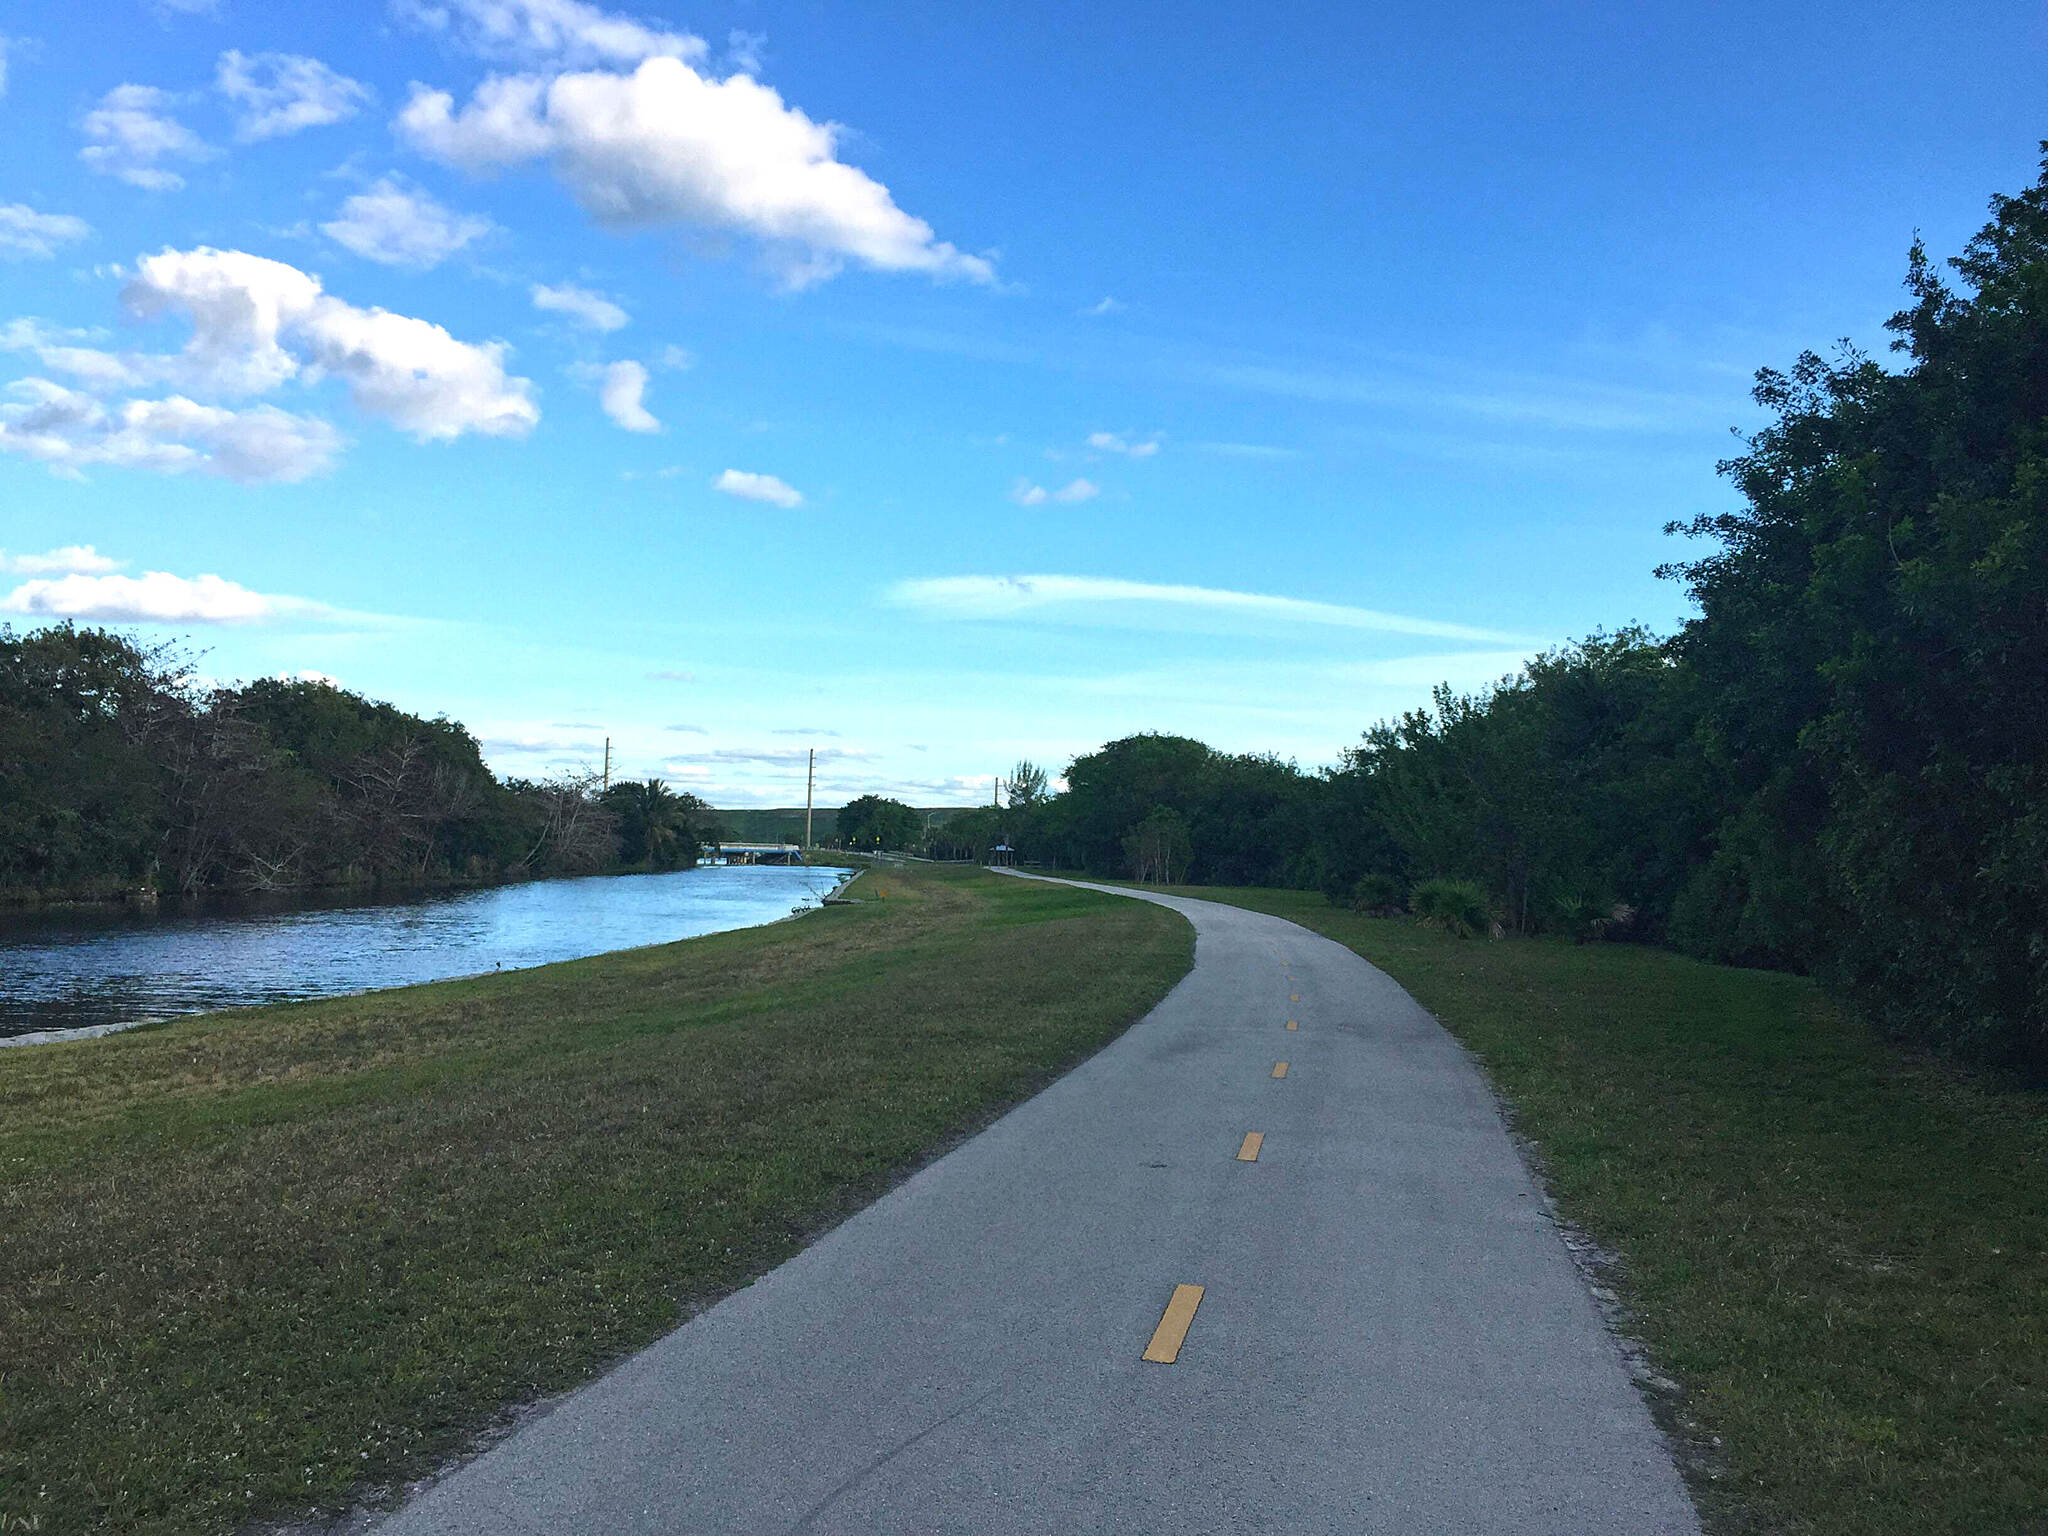 Black Creek Trail (Miami-Dade) Black Creek Trail - Miami-Dade Photo submitted by: miss_veronicaxd